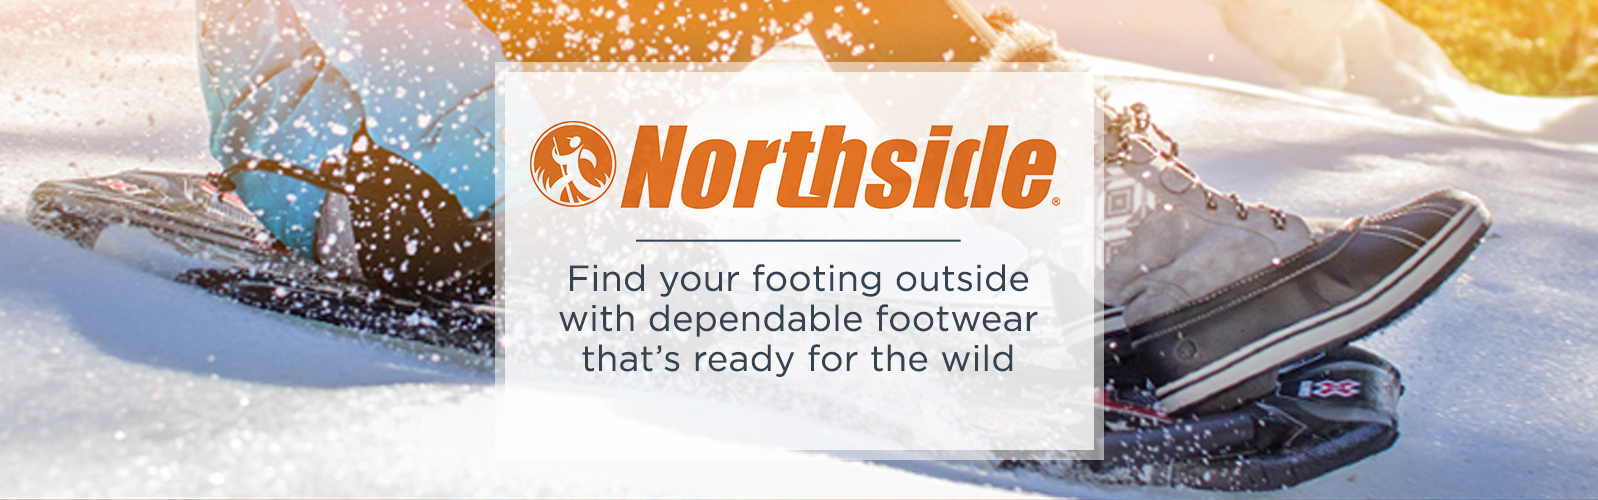 Northside — Find your footing outside with dependable footwear that's ready for the wild